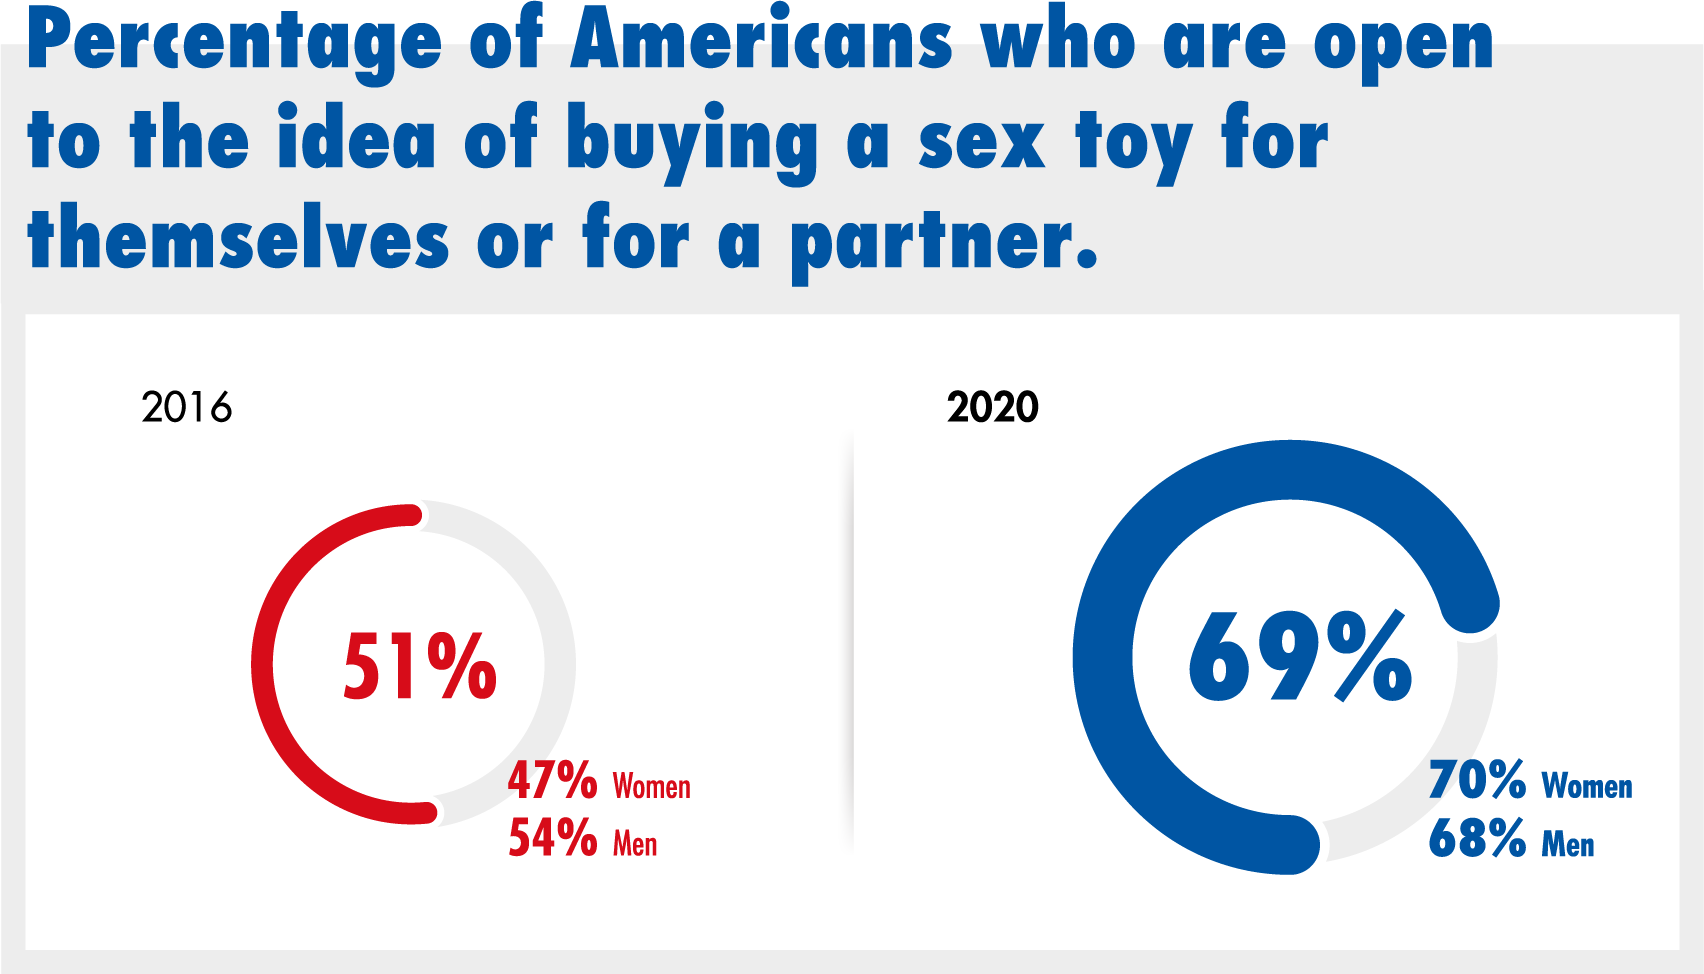 Percentage of Americans who are open to the idea of buying a sex toy for themselves or for a partner.